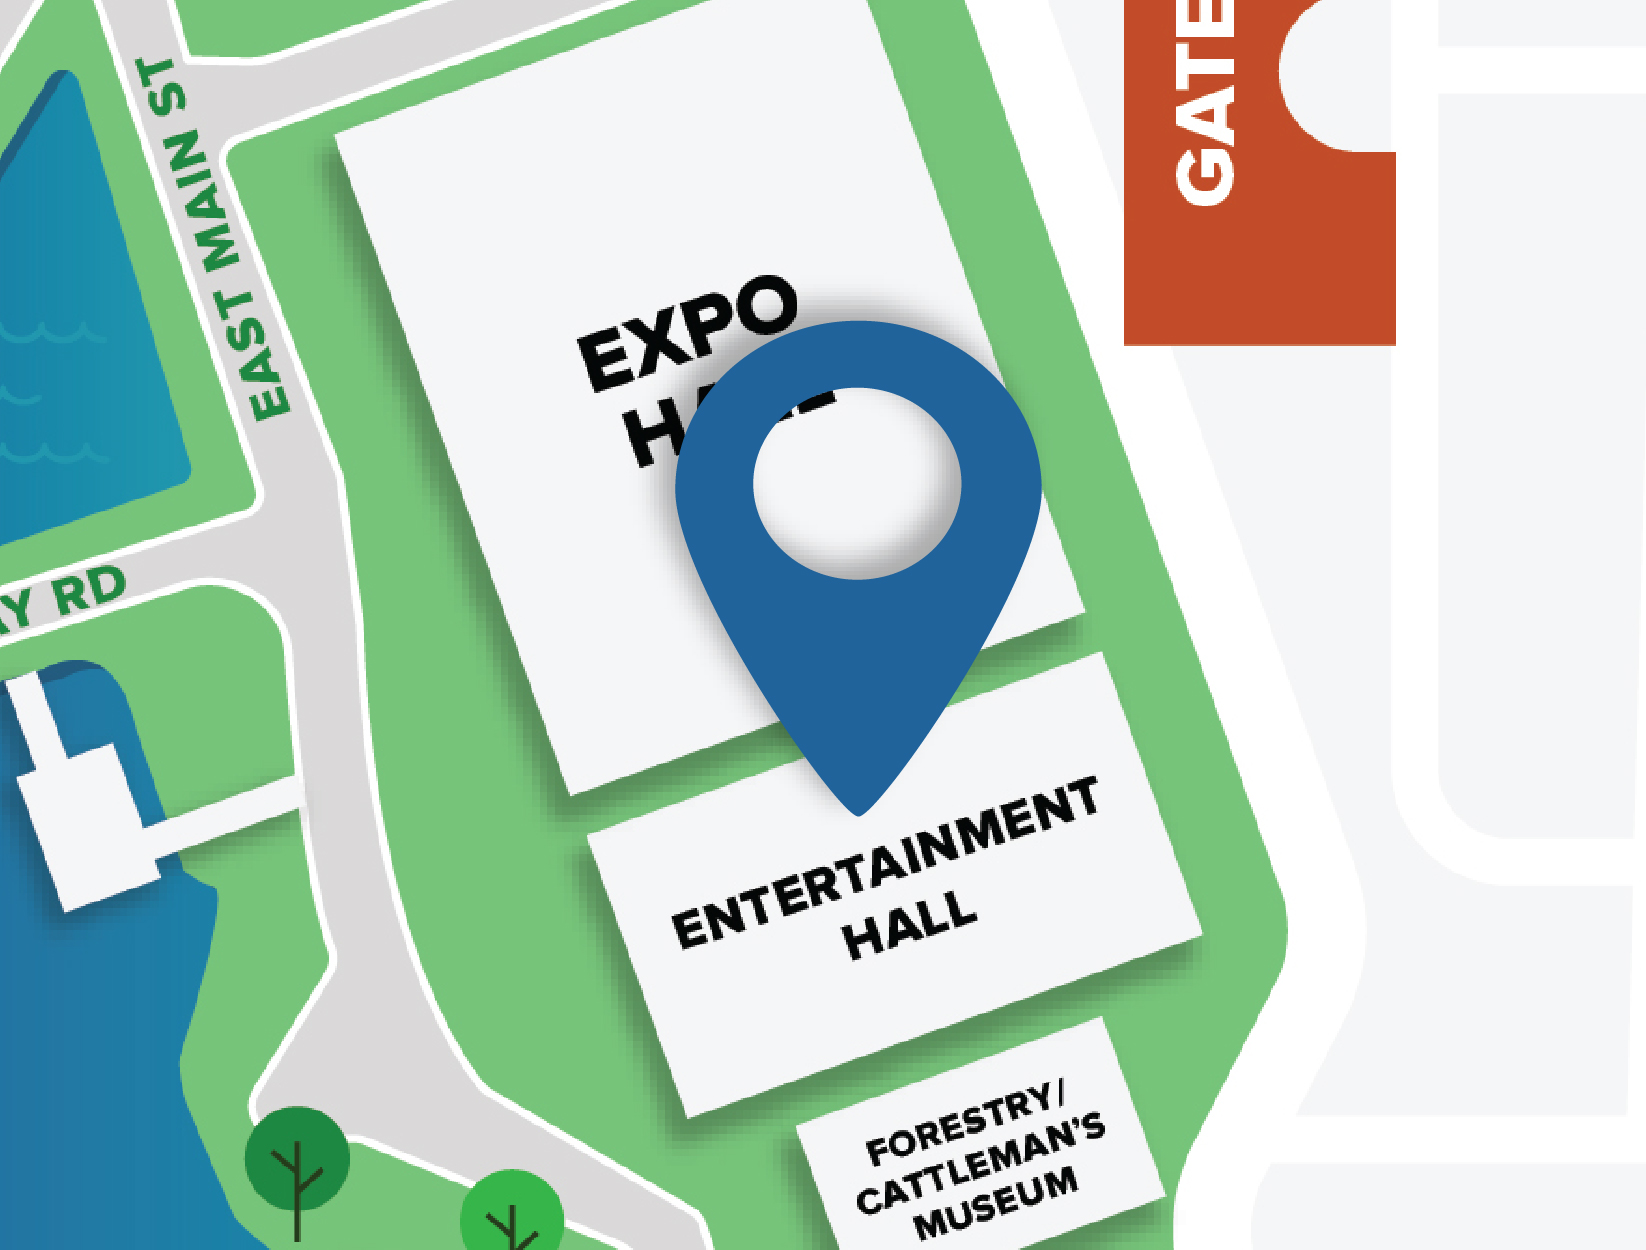 Entertainment Hall Map Location